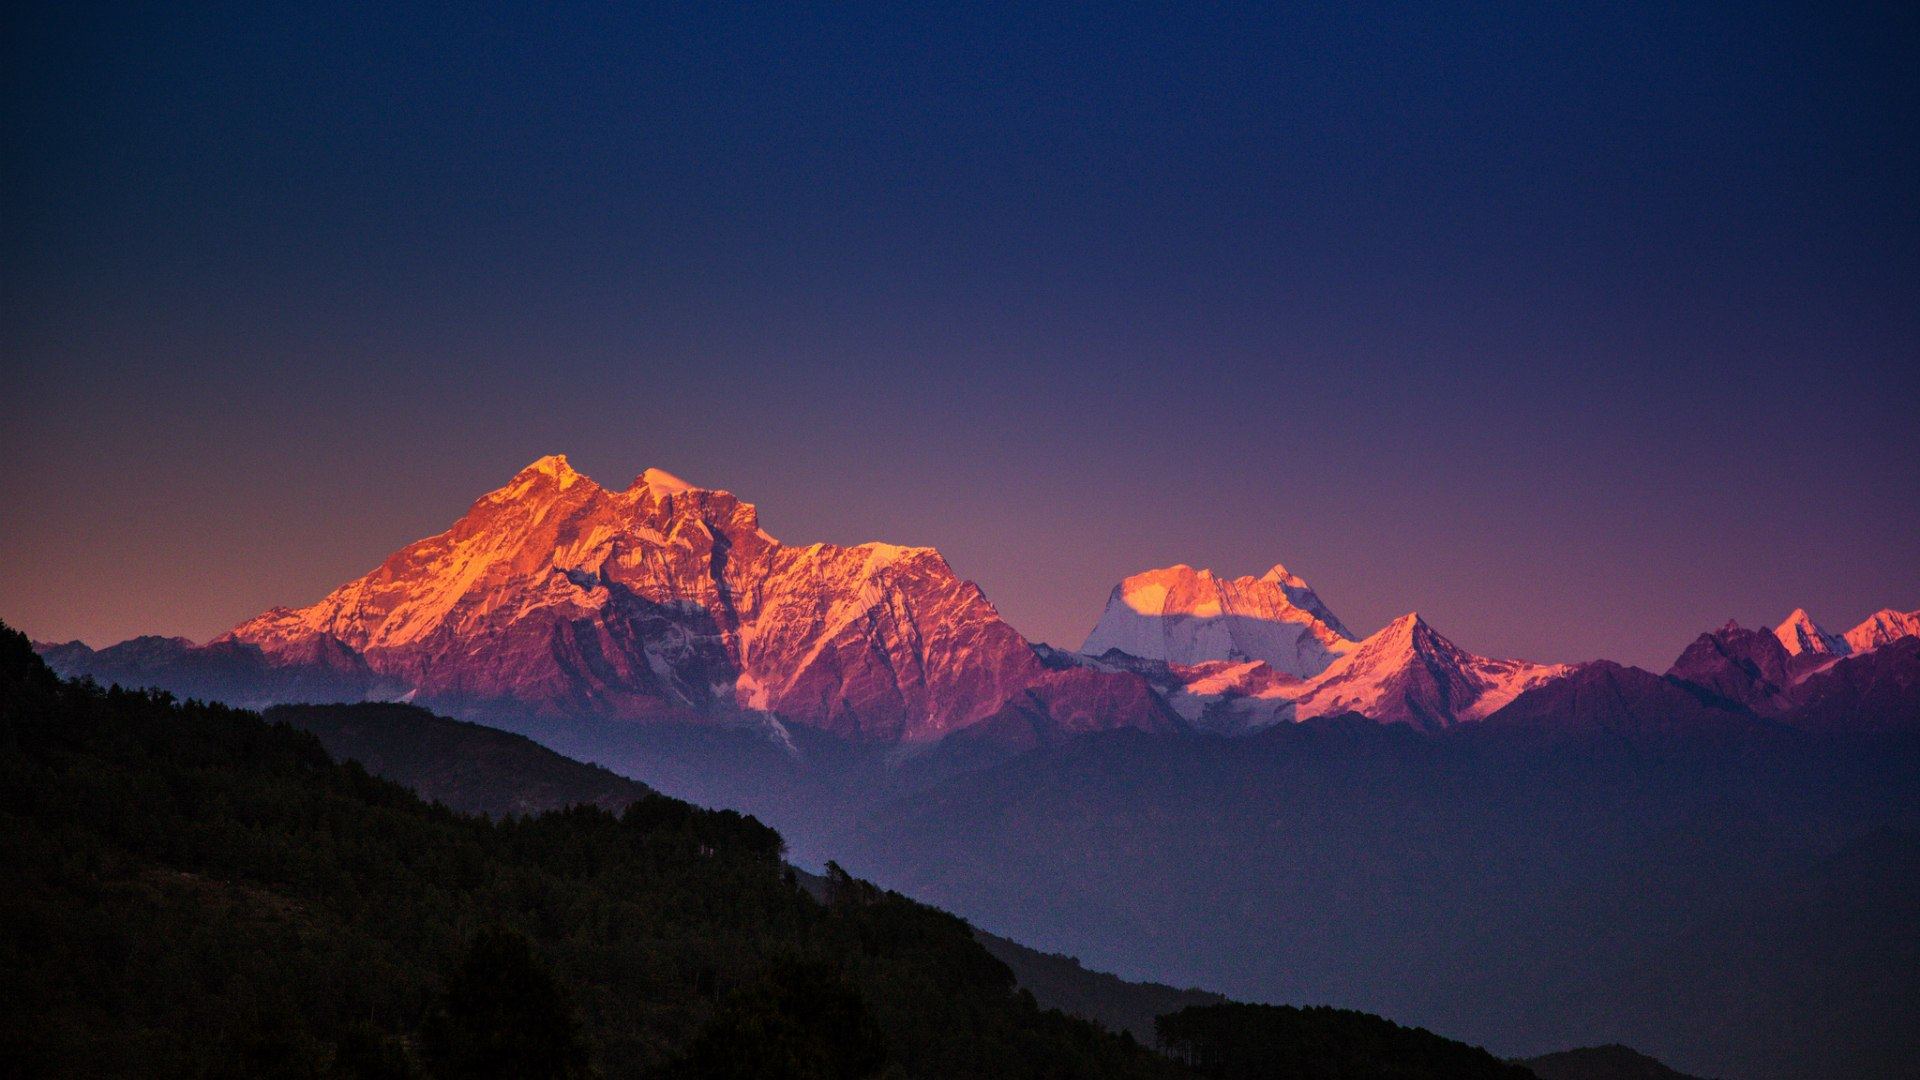 FDZ 26 Pictures of Nepal HD 47 Best Wallpapers 1920x1080